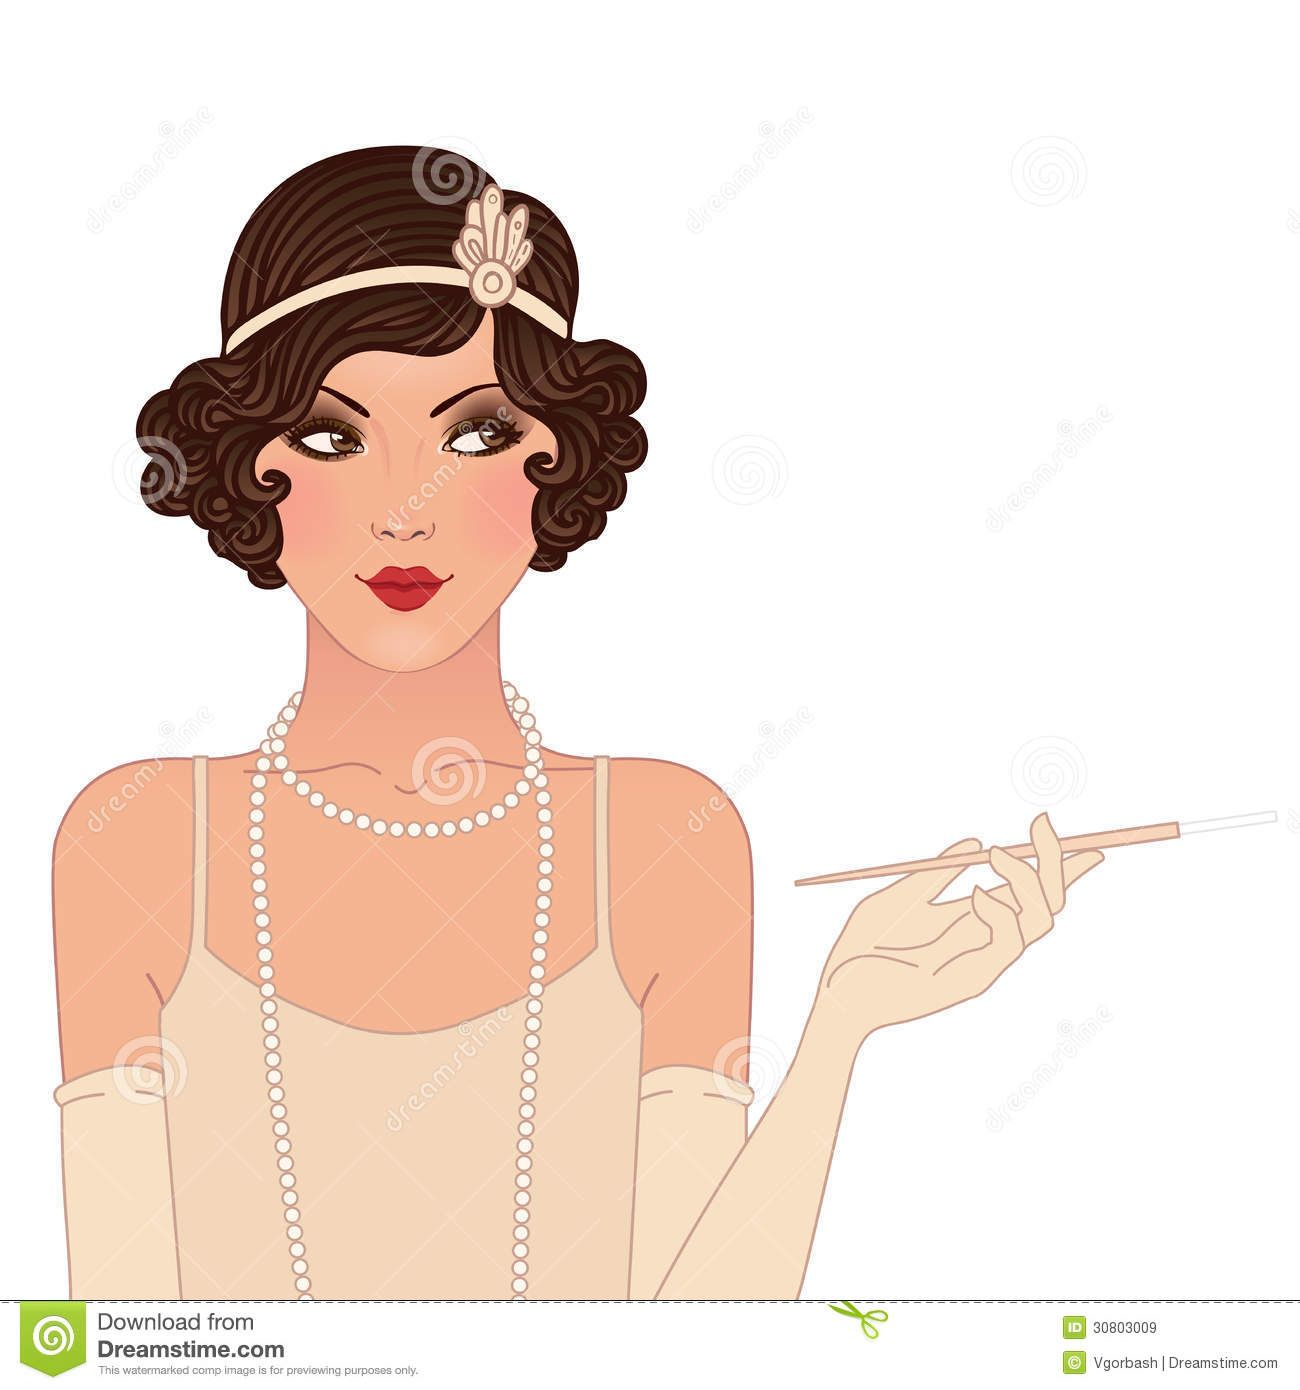 1920 s woman black and white clipart svg transparent download Flapper Girl Vintage Woman In 1920s Style Gdansk Royalty Free ... svg transparent download